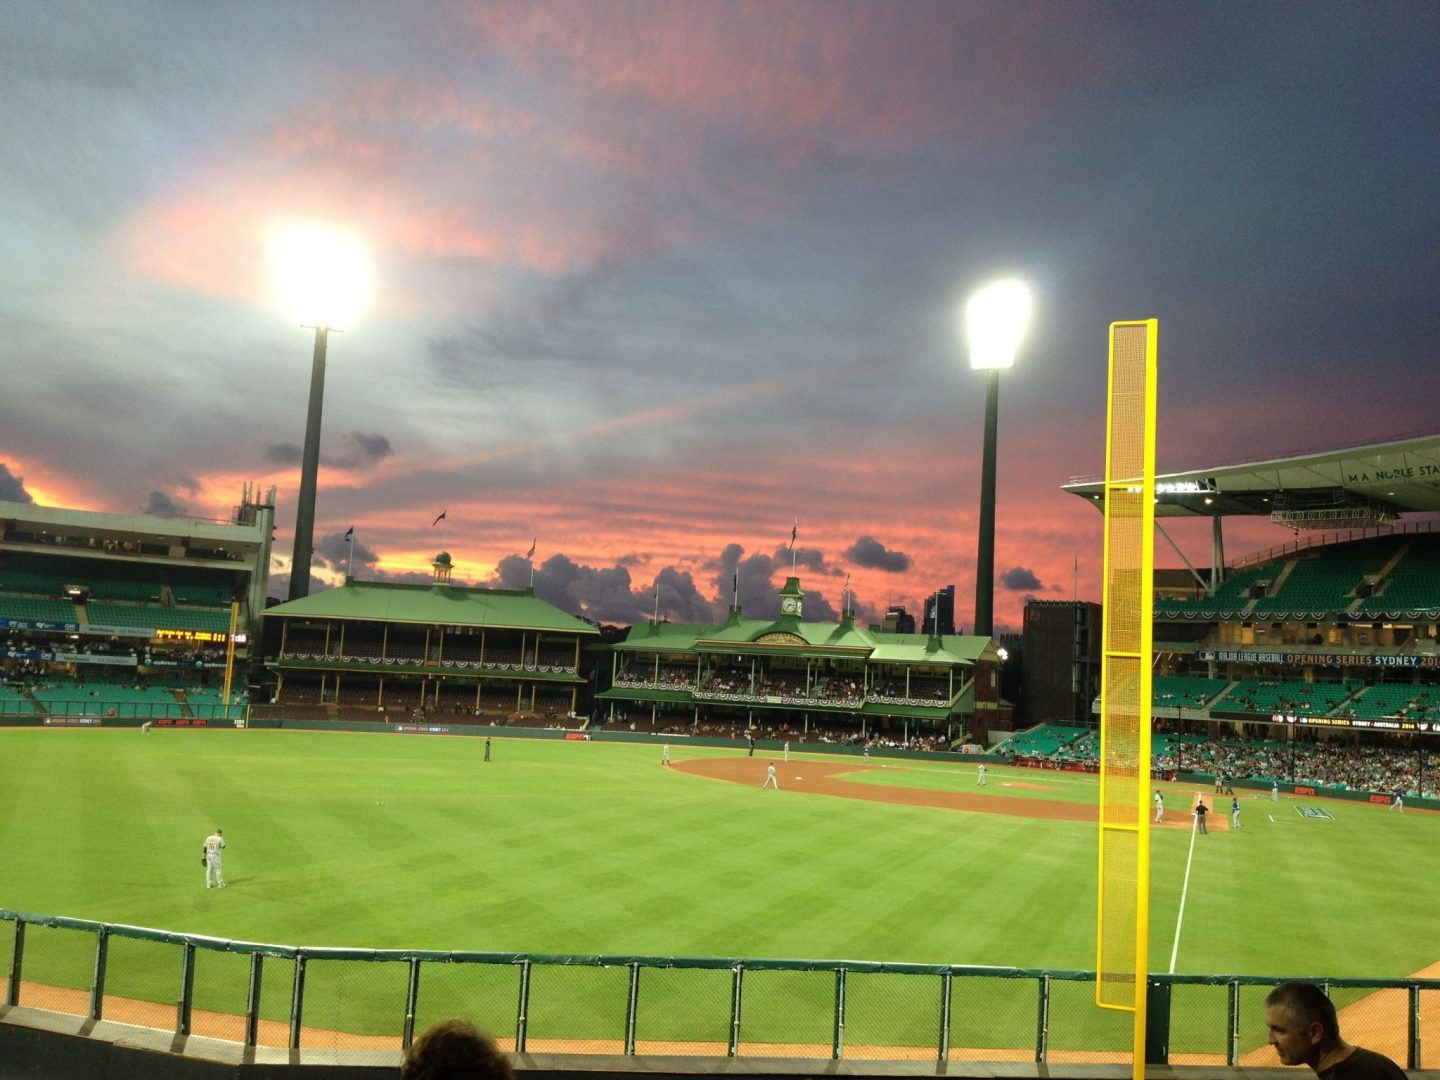 Sunset over Sydney Cricket Ground during the baseball game